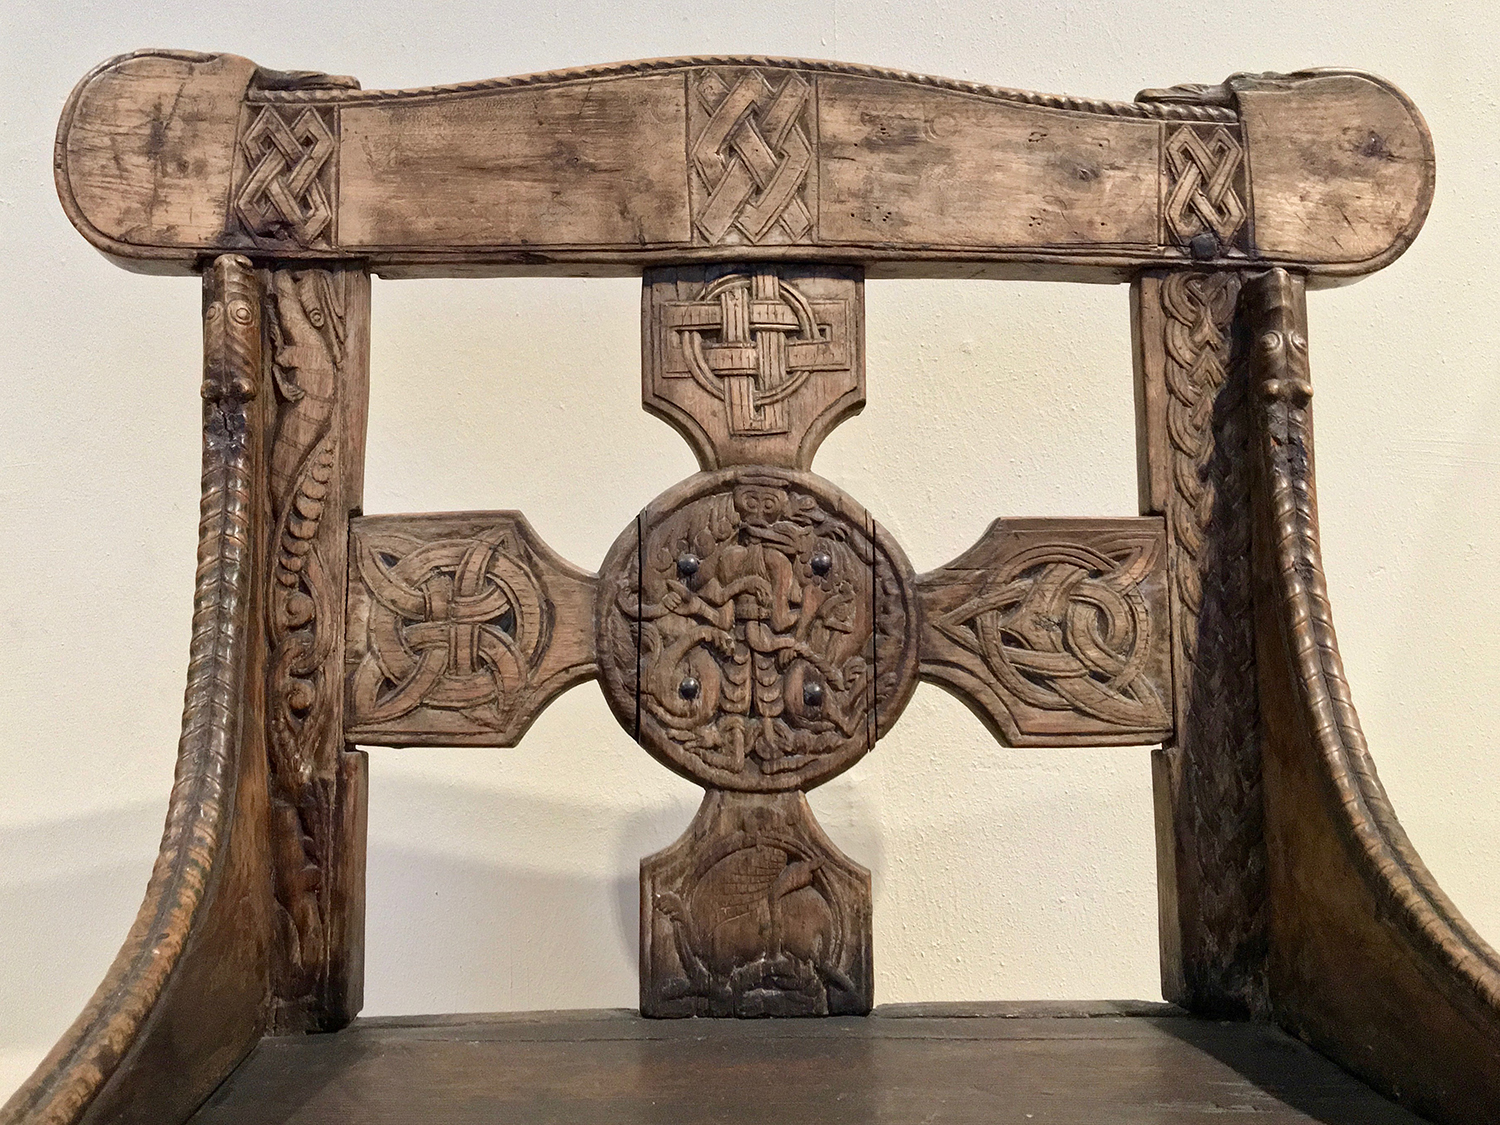 Figure 3: A detail of the back (front side) of the original Tyldal chair, photographed in the Medieval Exhibition Room (middelalderutstillingen) at Kulturhistorisk Museum, Oslo, Norway. The chair back consists of a square cross anchored by a central medallion. The design on the top arm of the cross was copied in the Glencairn chair. Photo © User: Wolfmann / Wikimedia Commons.